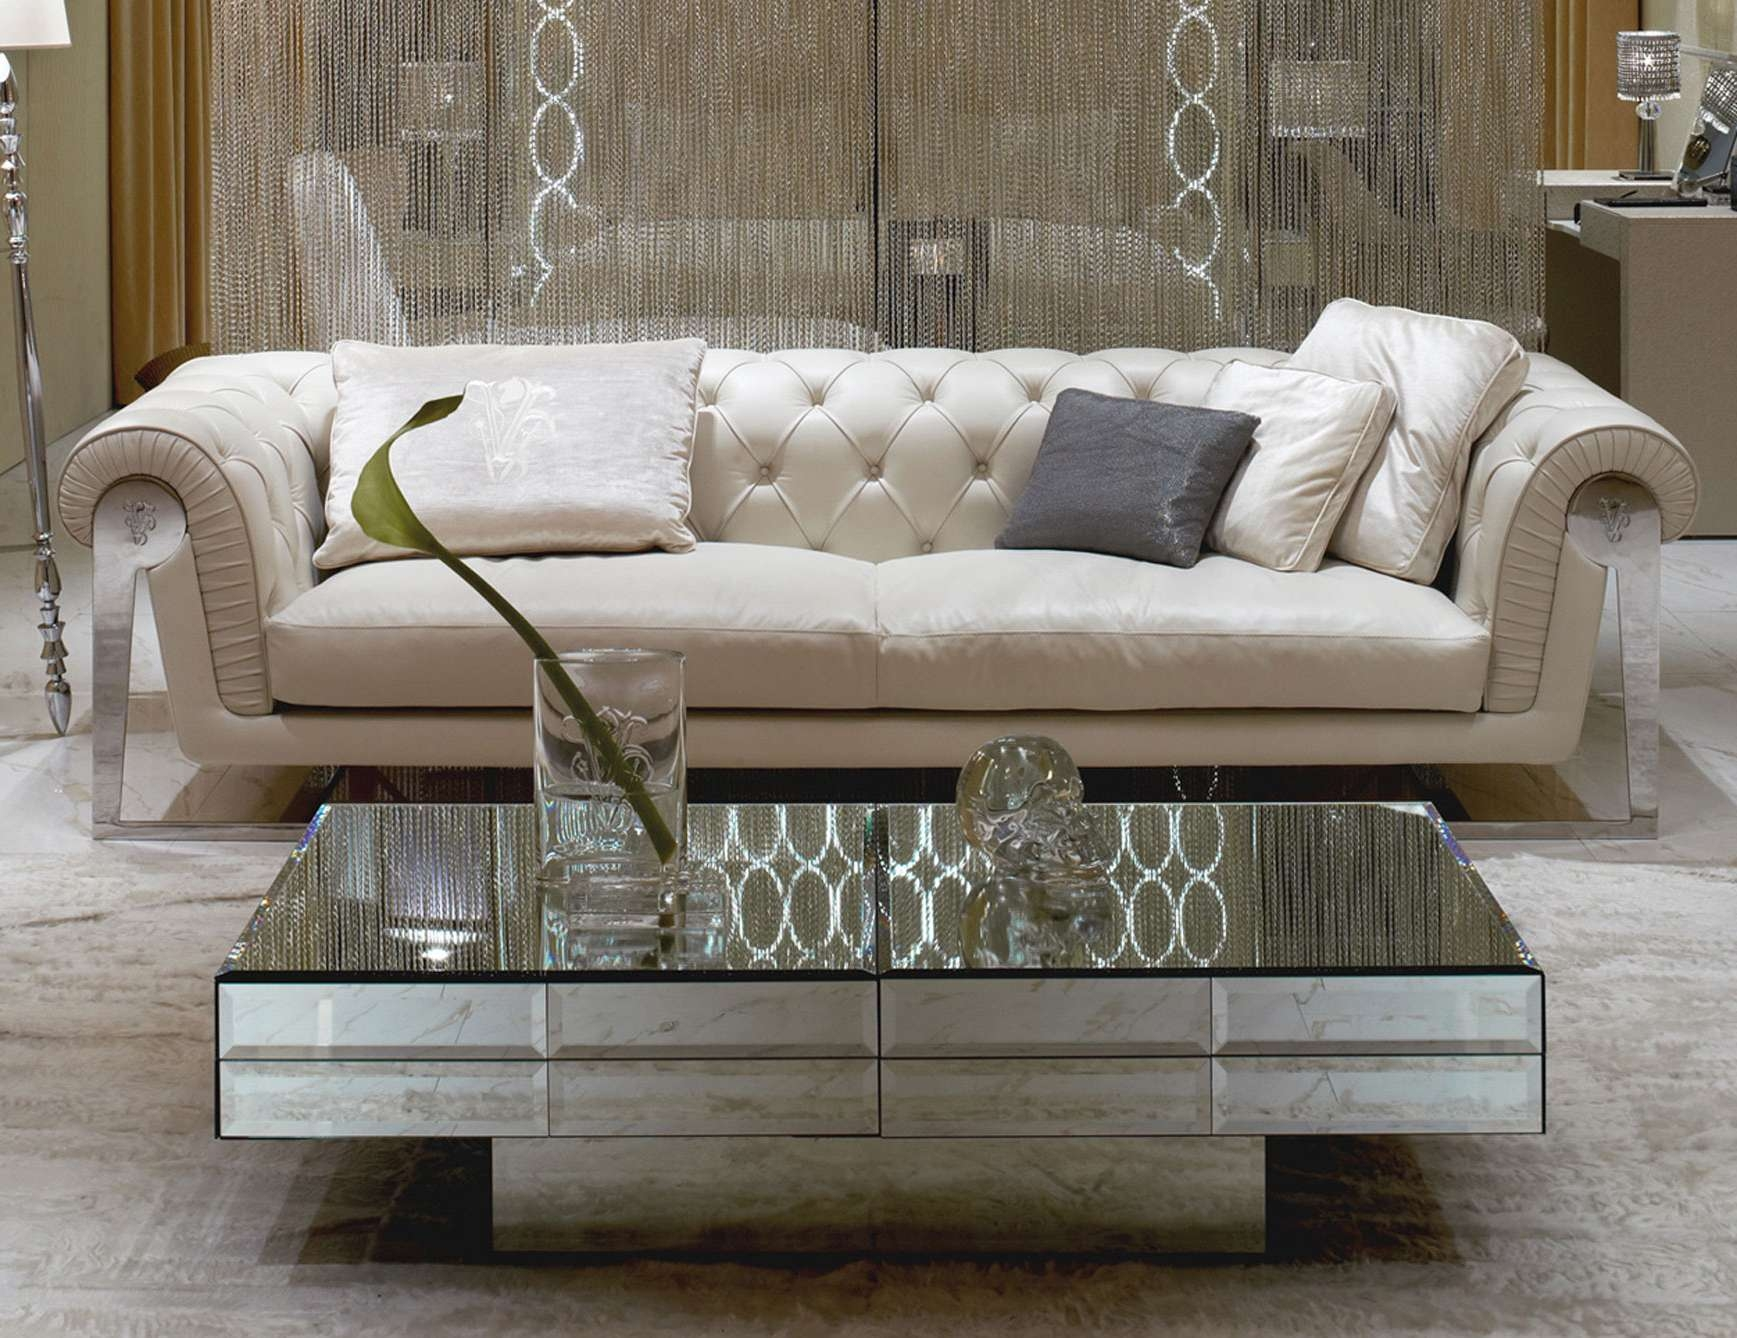 Nella Vetrina Visionnaire Ipe Cavalli Acer Designer Glass Coffee Table Intended For Current Coffee Tables Mirrored (View 18 of 20)